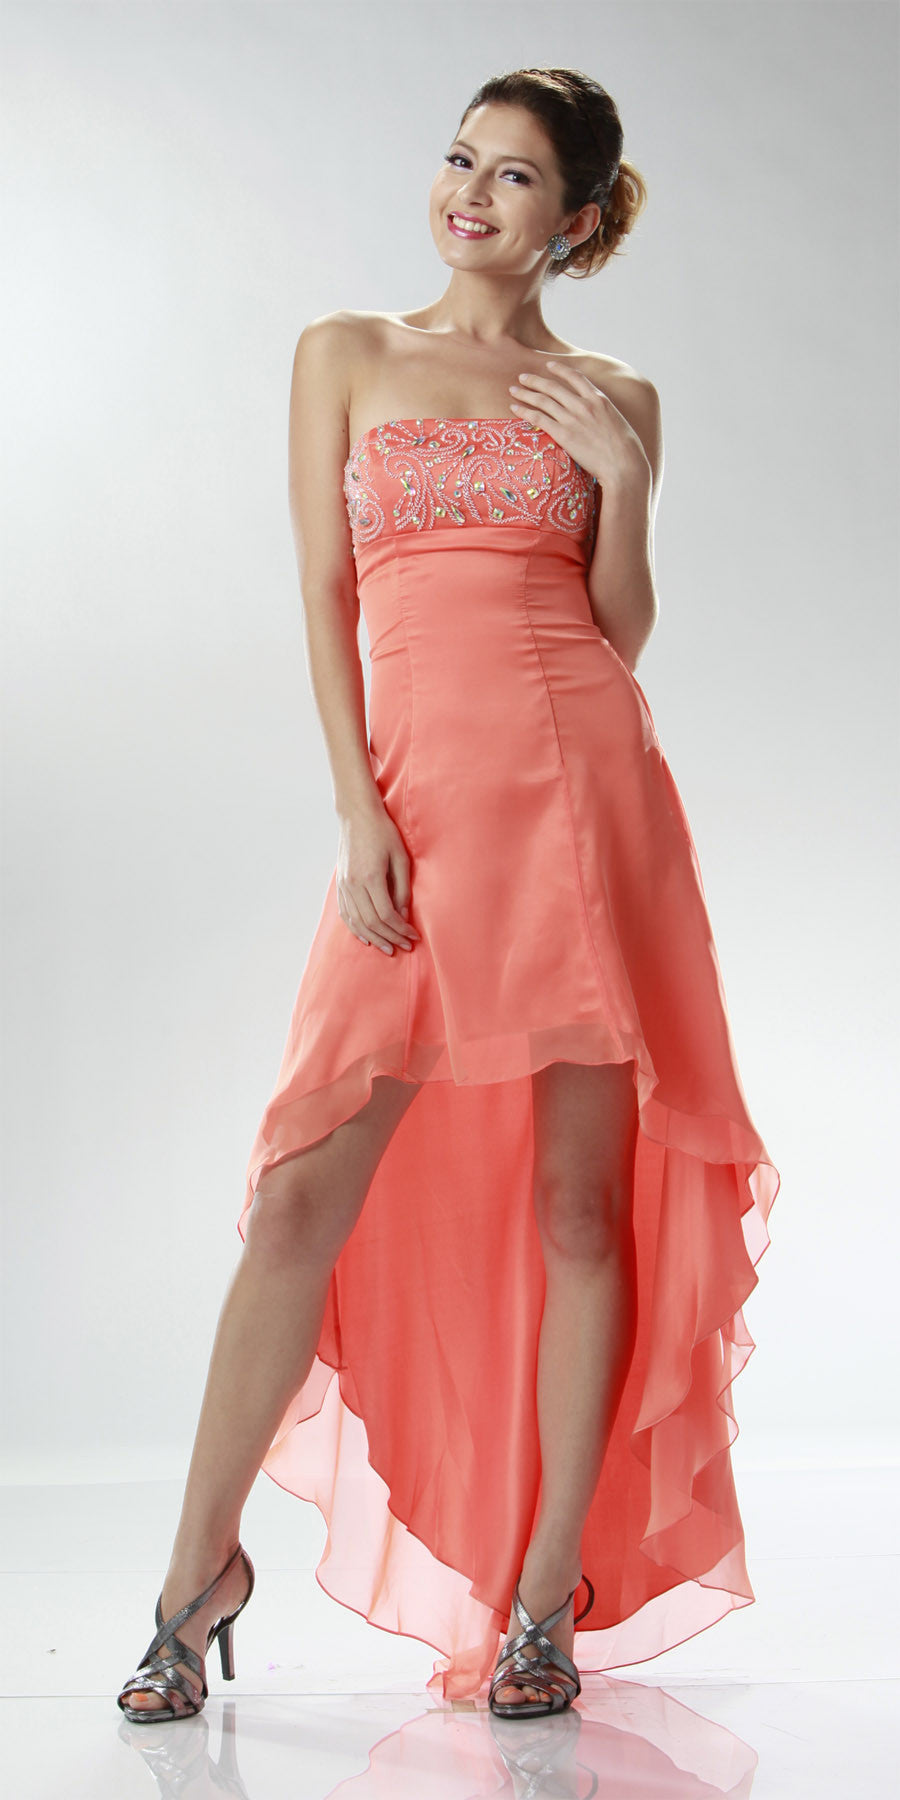 ON SPECIAL LIMITED STOCK - Orange/Coral High Low Homecoming Dress 2 Tone Chiffon Strapless Beaded Top